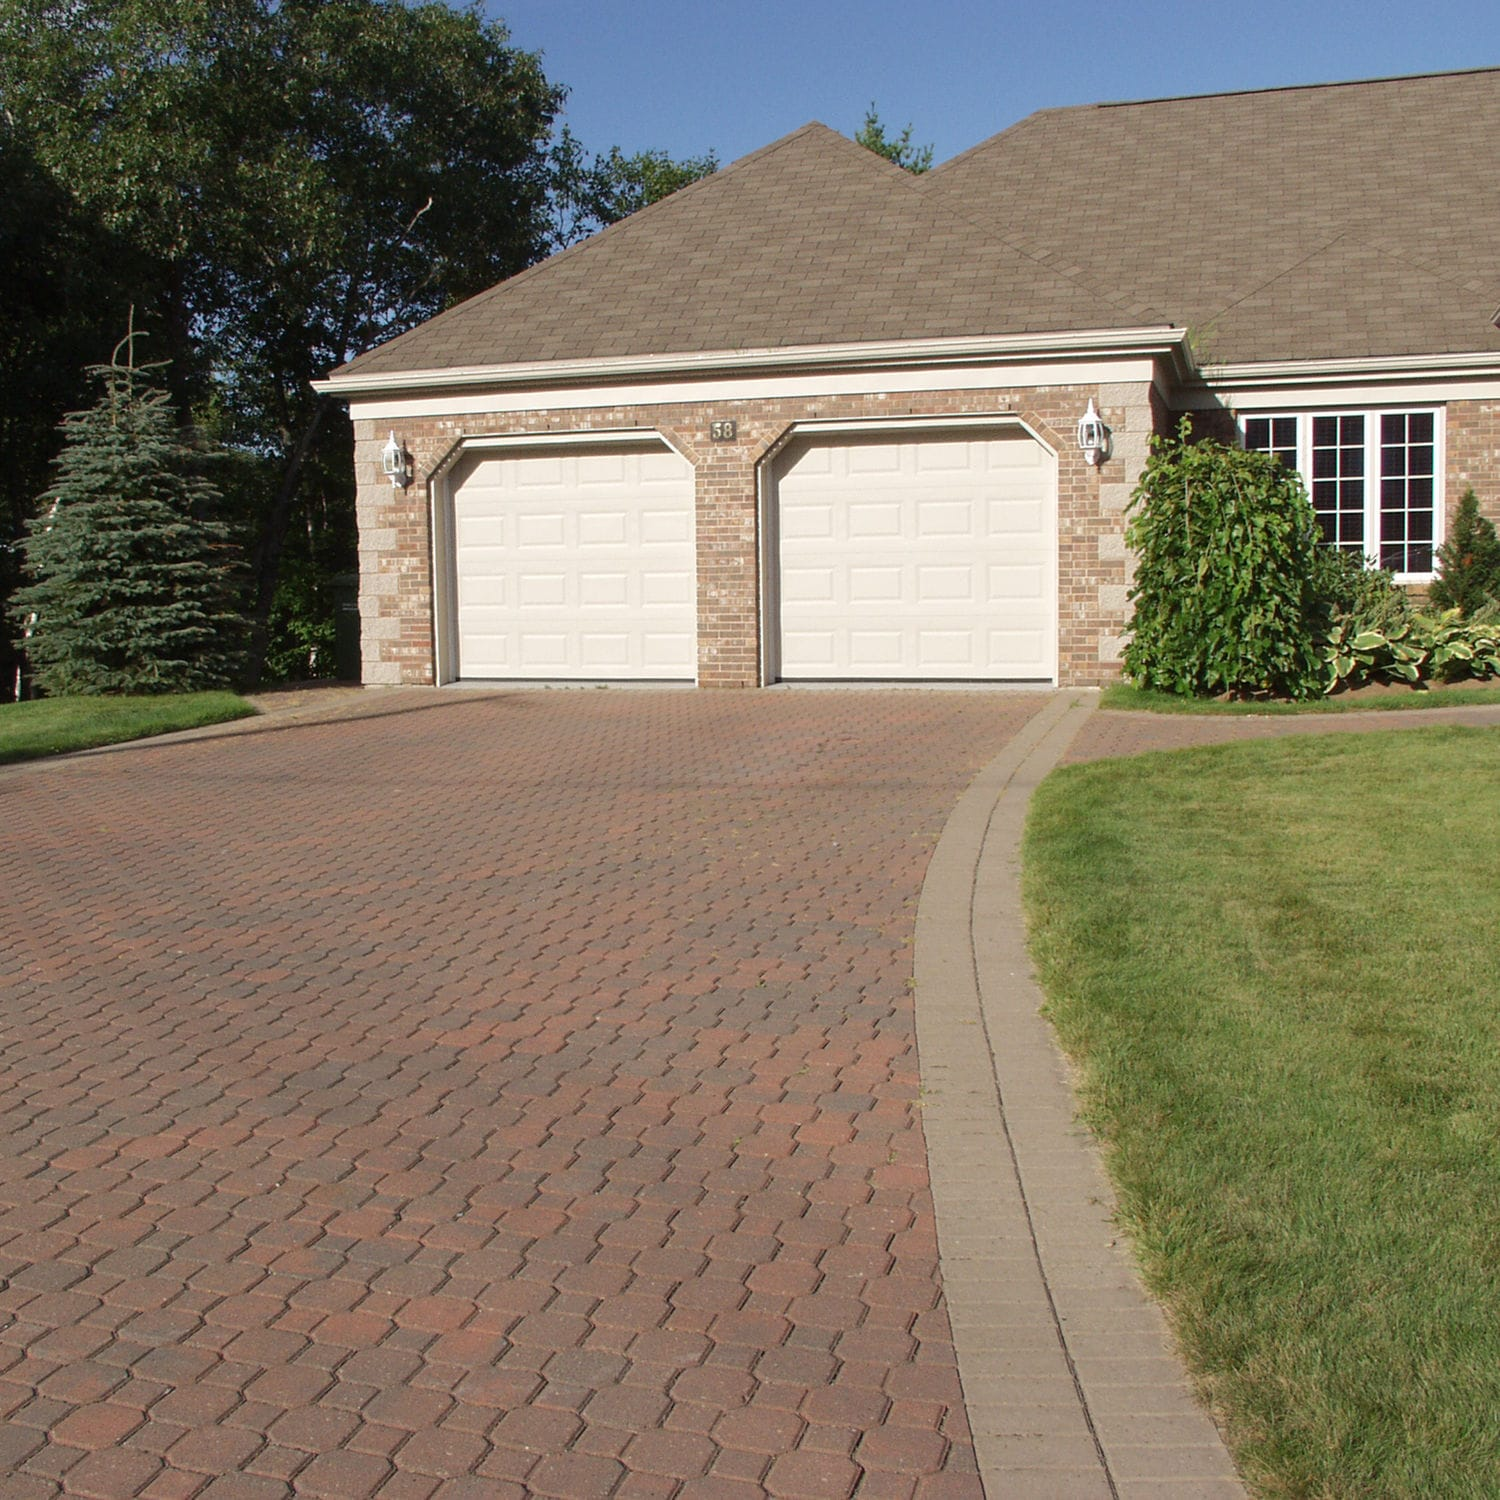 Concrete Paver Keystone Shaw Brick Drive Over Anti Slip Frost Resistant